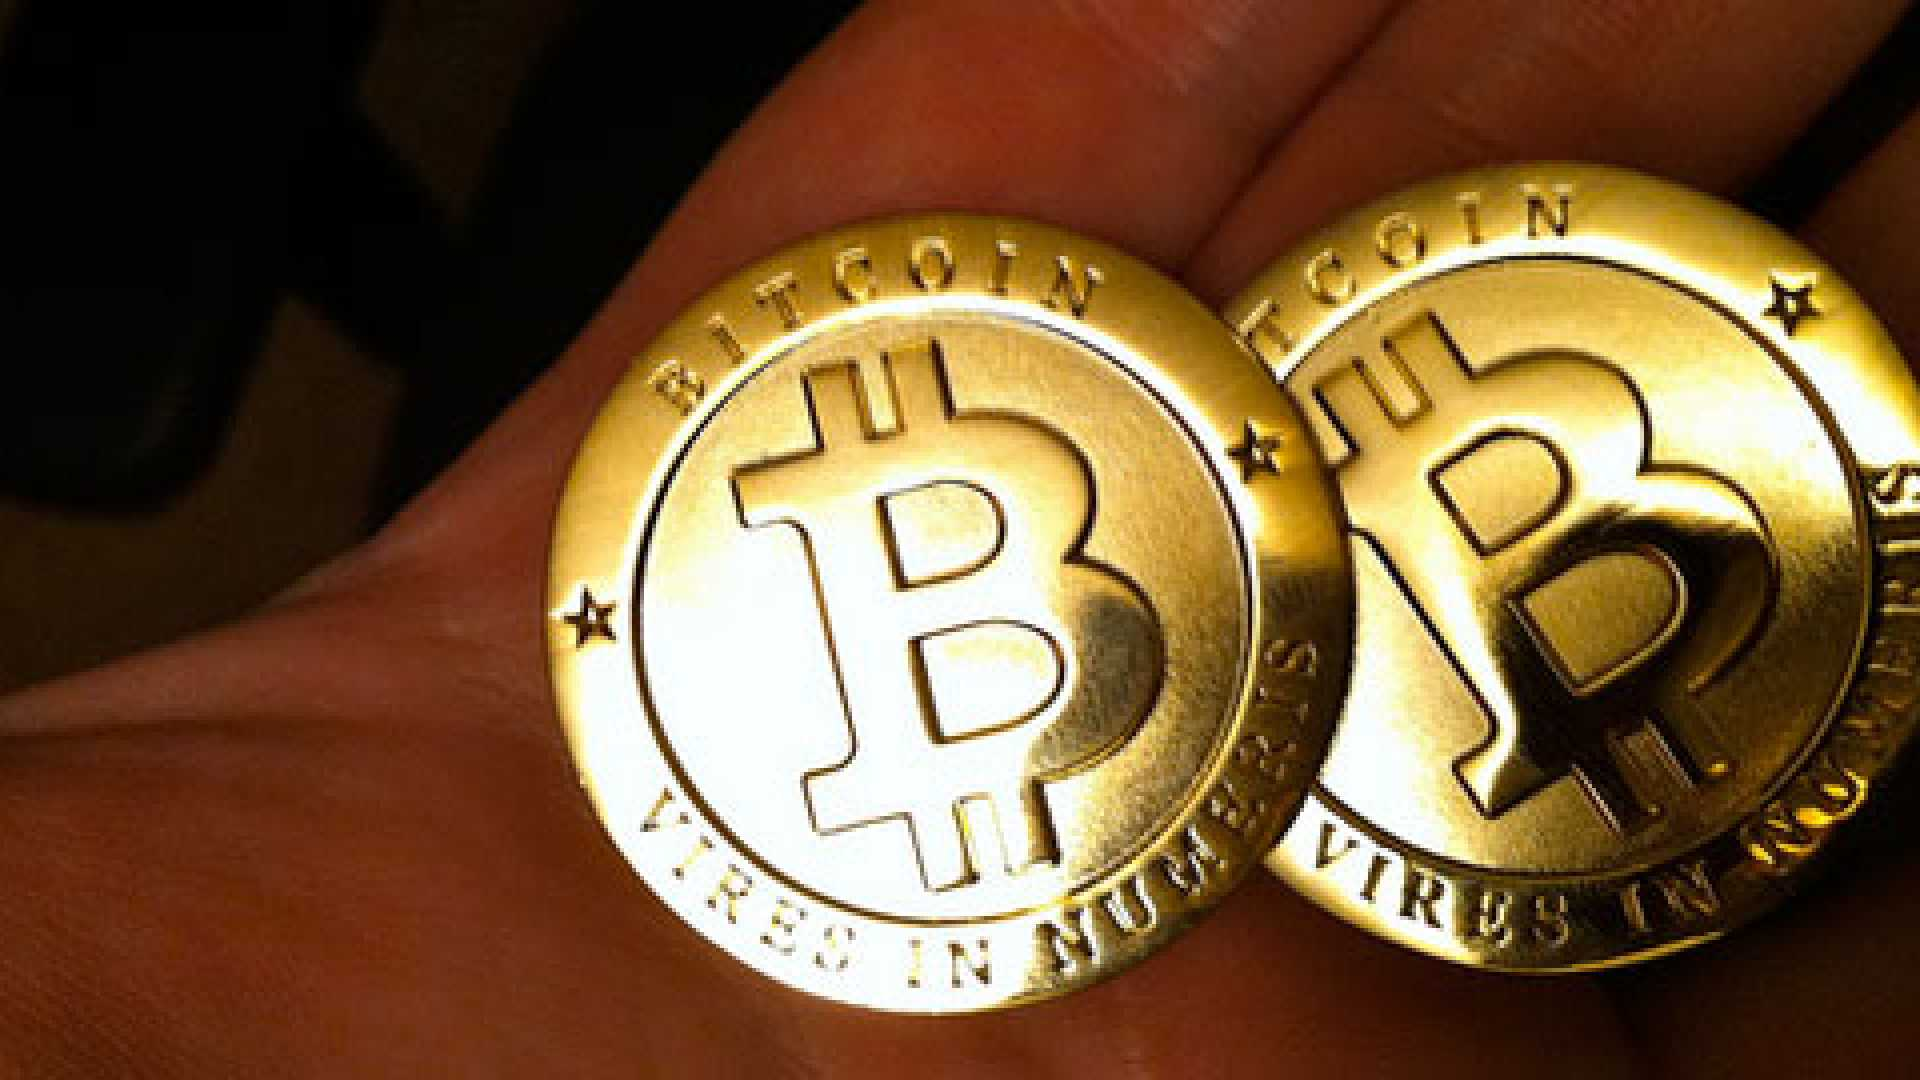 8 Questions for a Bitcoin Millionaire